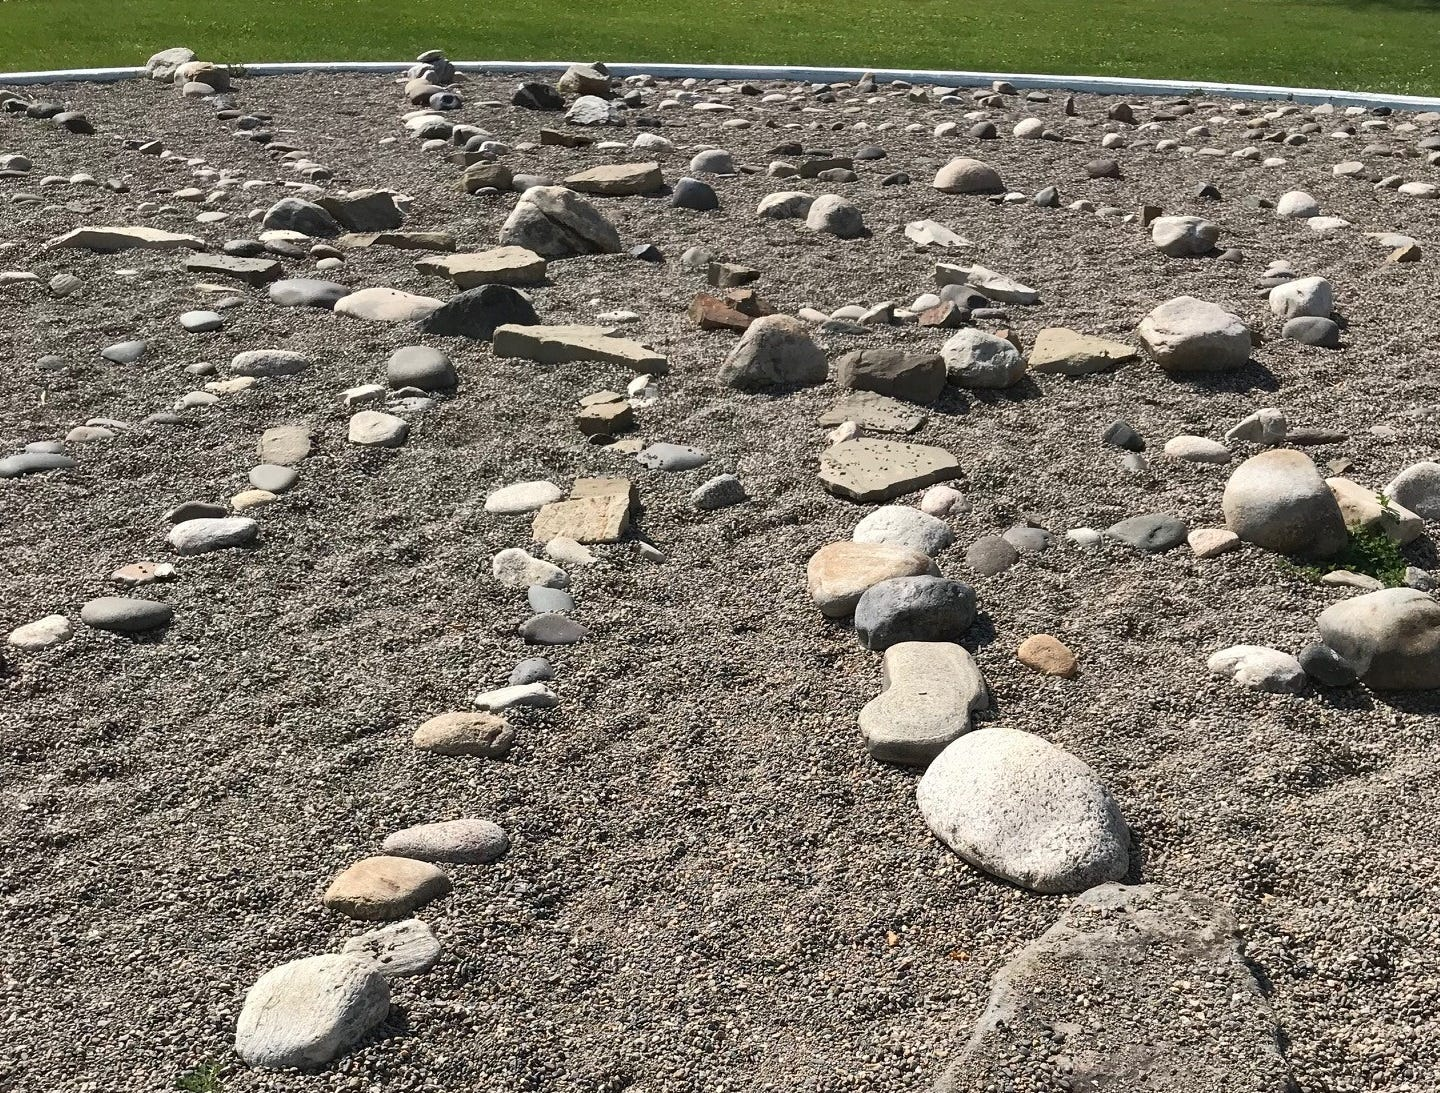 Livingston has a community LabyrDial (labyrinth/sundial) in Sacajawea Park. Visitors can find out the time of day by observing where their shadows fall on marked rocks.